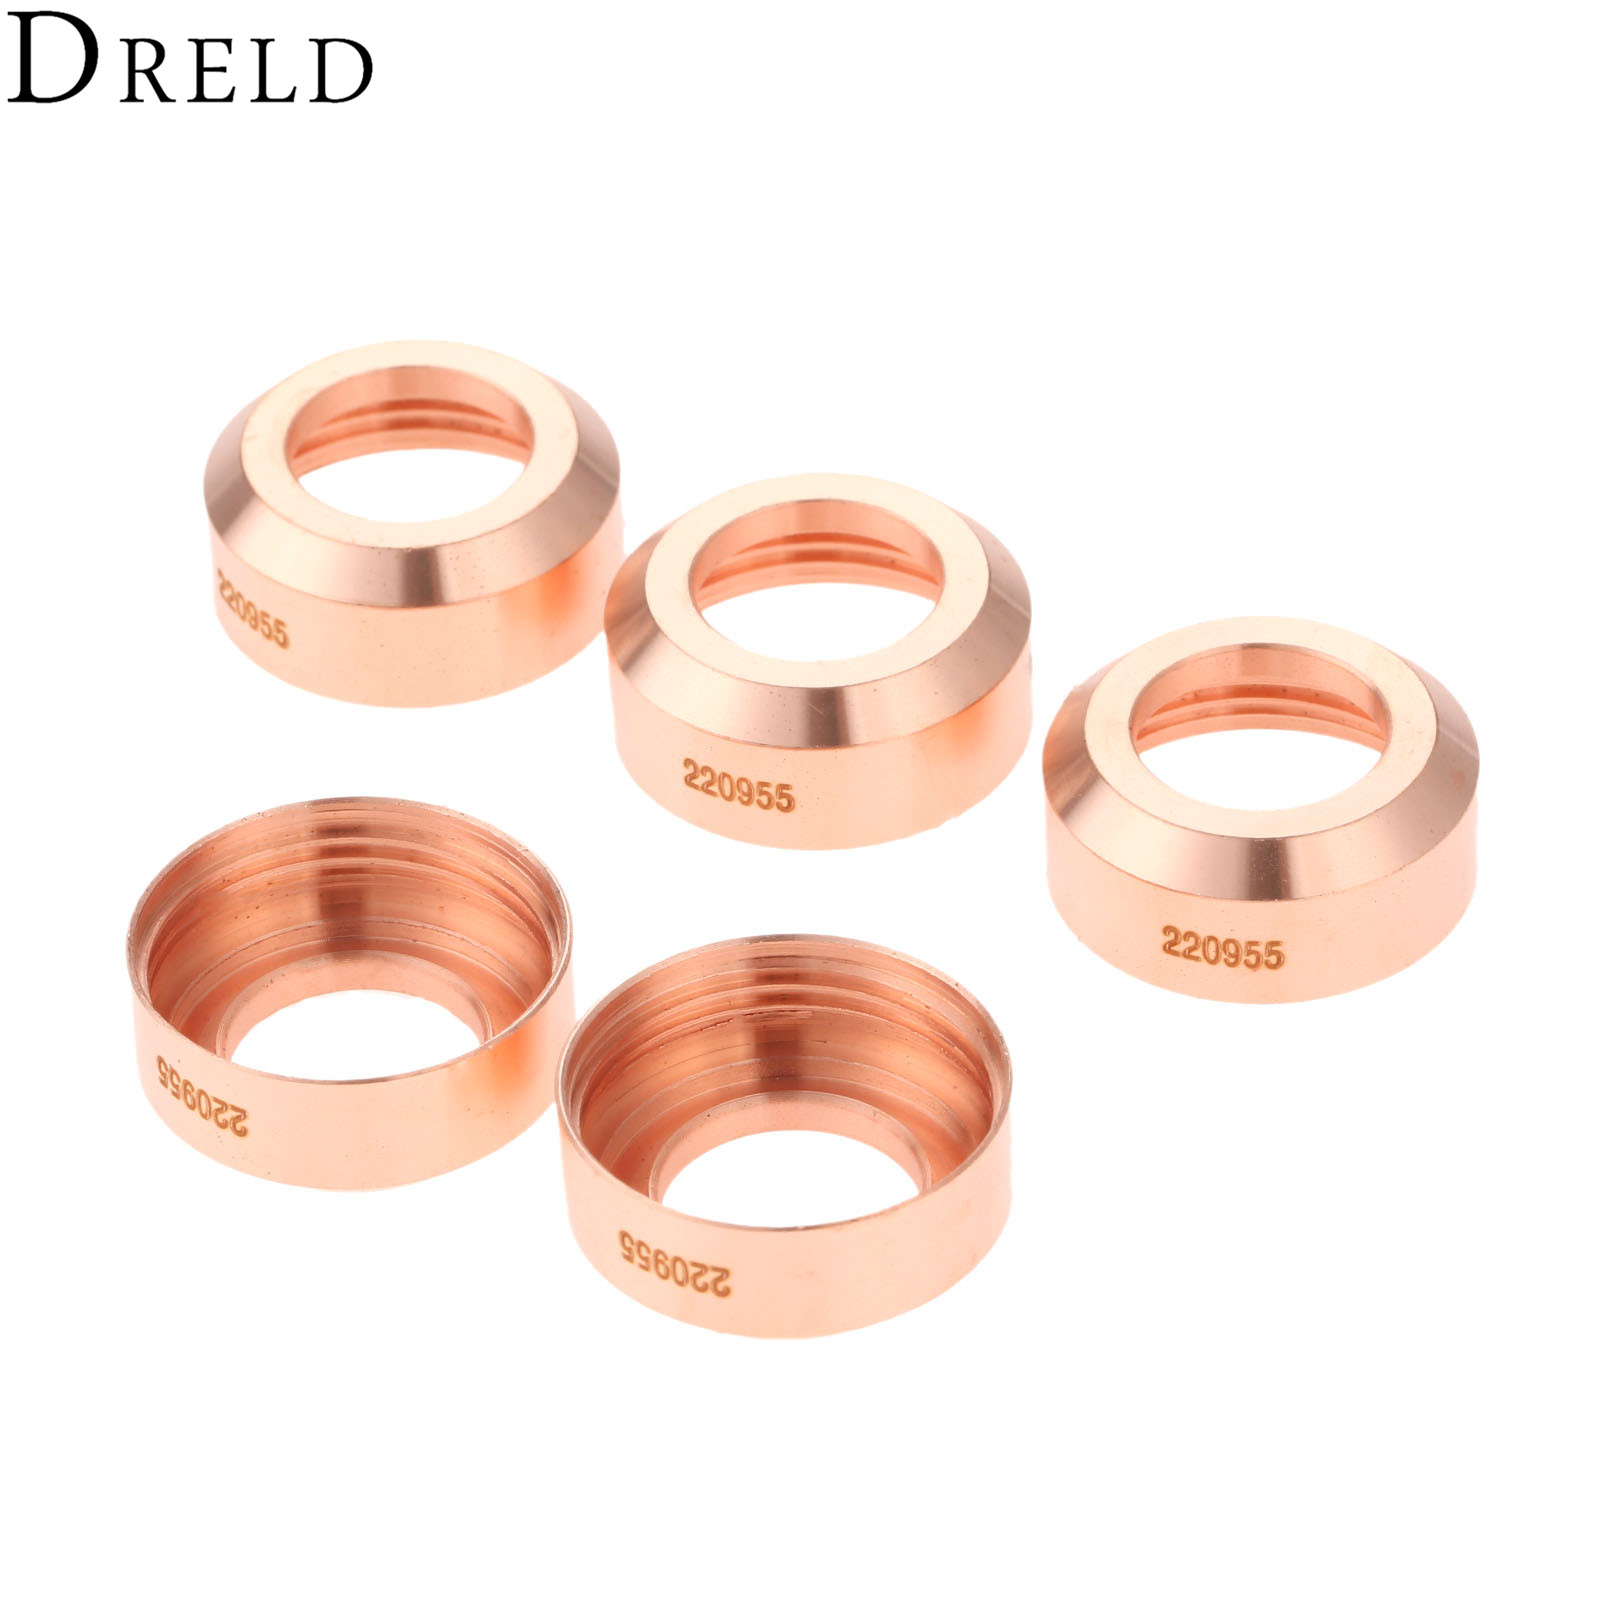 DRELD 5Pcs 45A-100A Plasma Shield 220955 Fit For 65/85 Plasma Cutting Torch Consumables Welding Soldering Supplies Replacement